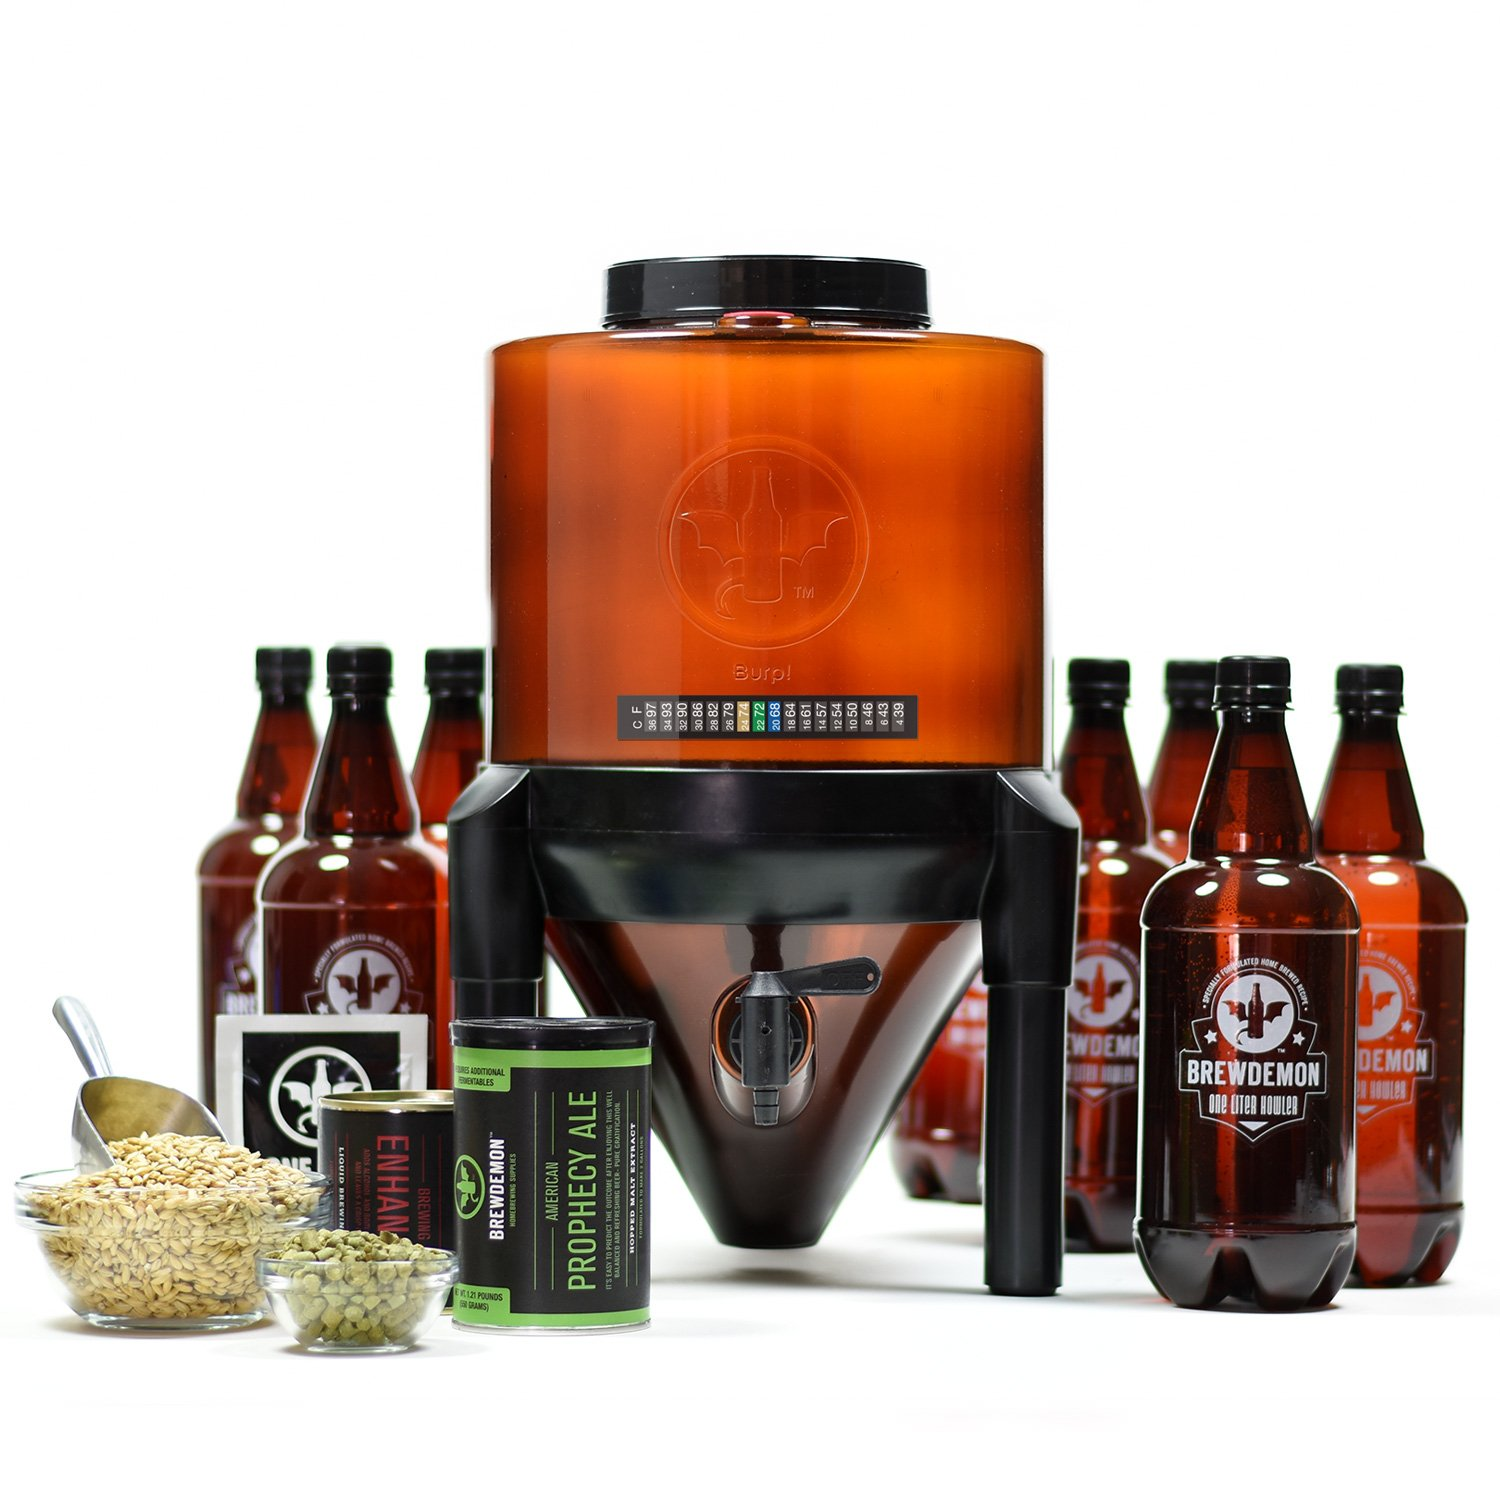 BrewDemon Craft Beer Kit Plus by Demon Brewing Company - NO SIPHON HOSE OR AIRLOCK REQUIRED Easy To Use Craft Beer Starter Kit With Reusable Conical Fermenter, Equipment and Ingredients - Make Wicked- by BrewDemon